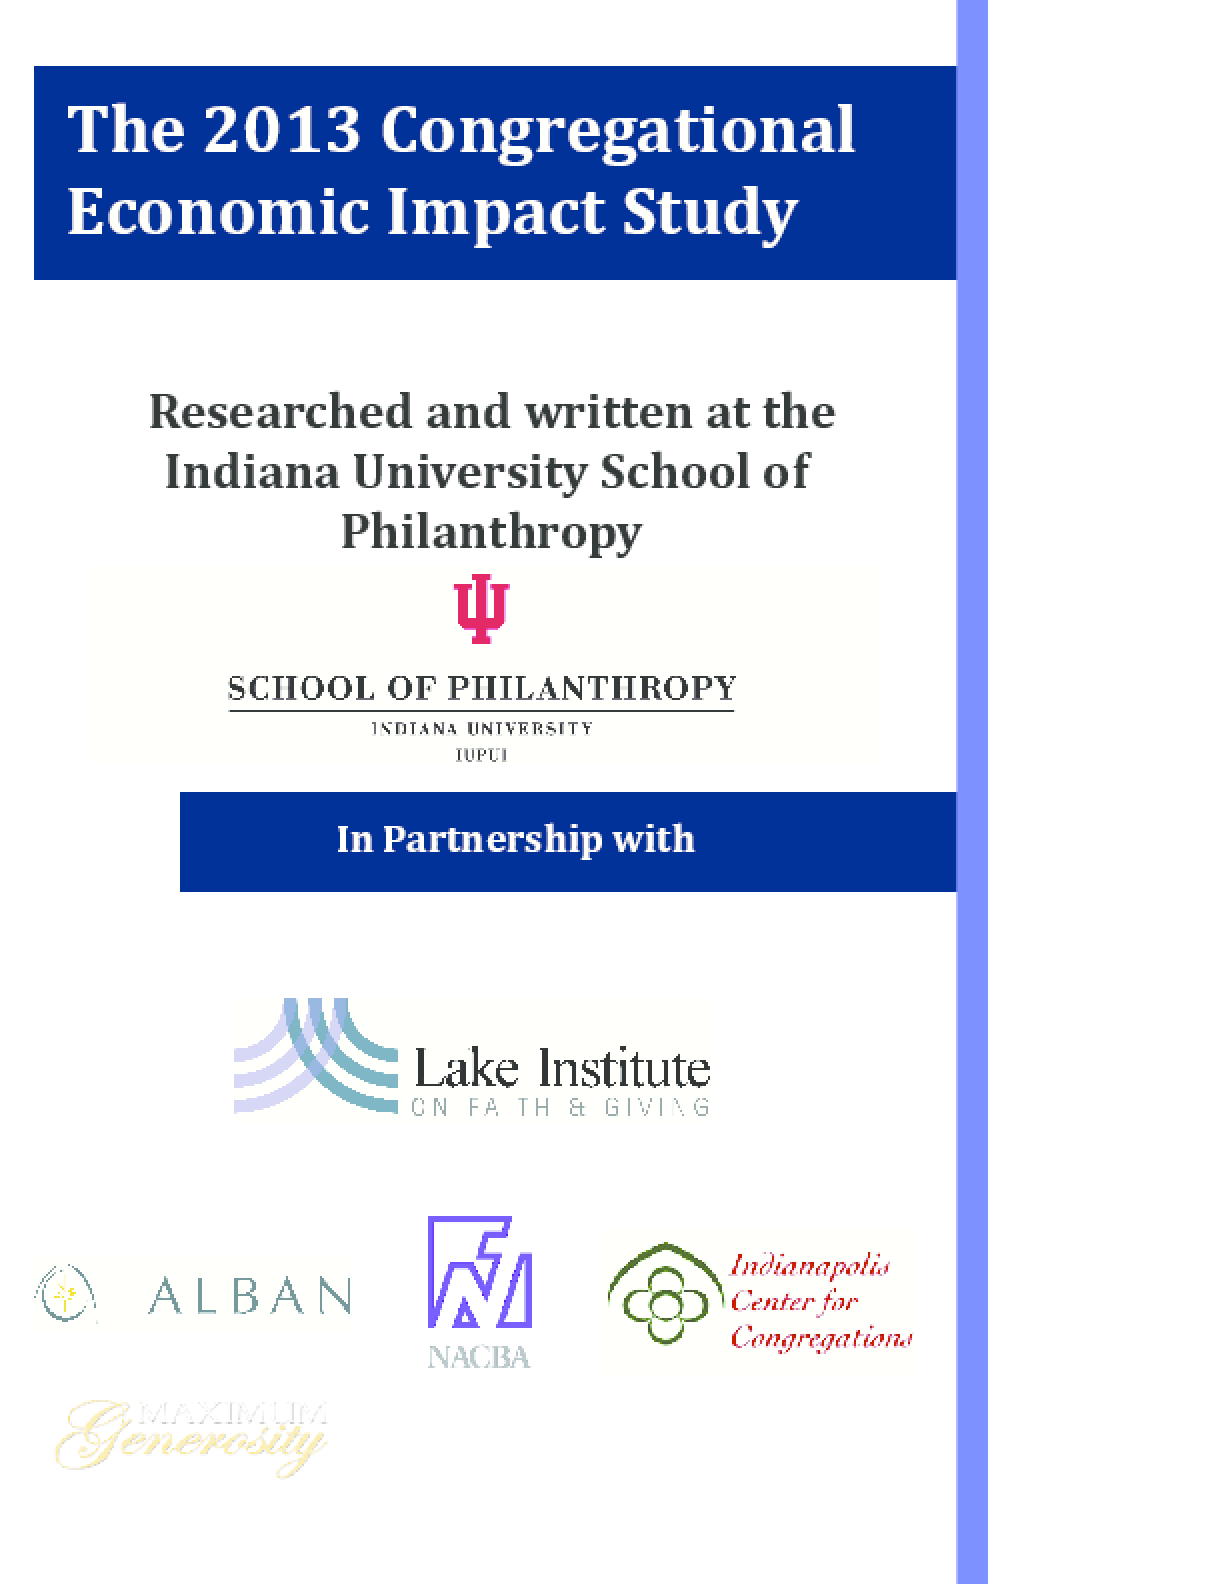 2013 Congregational Economic Impact Study